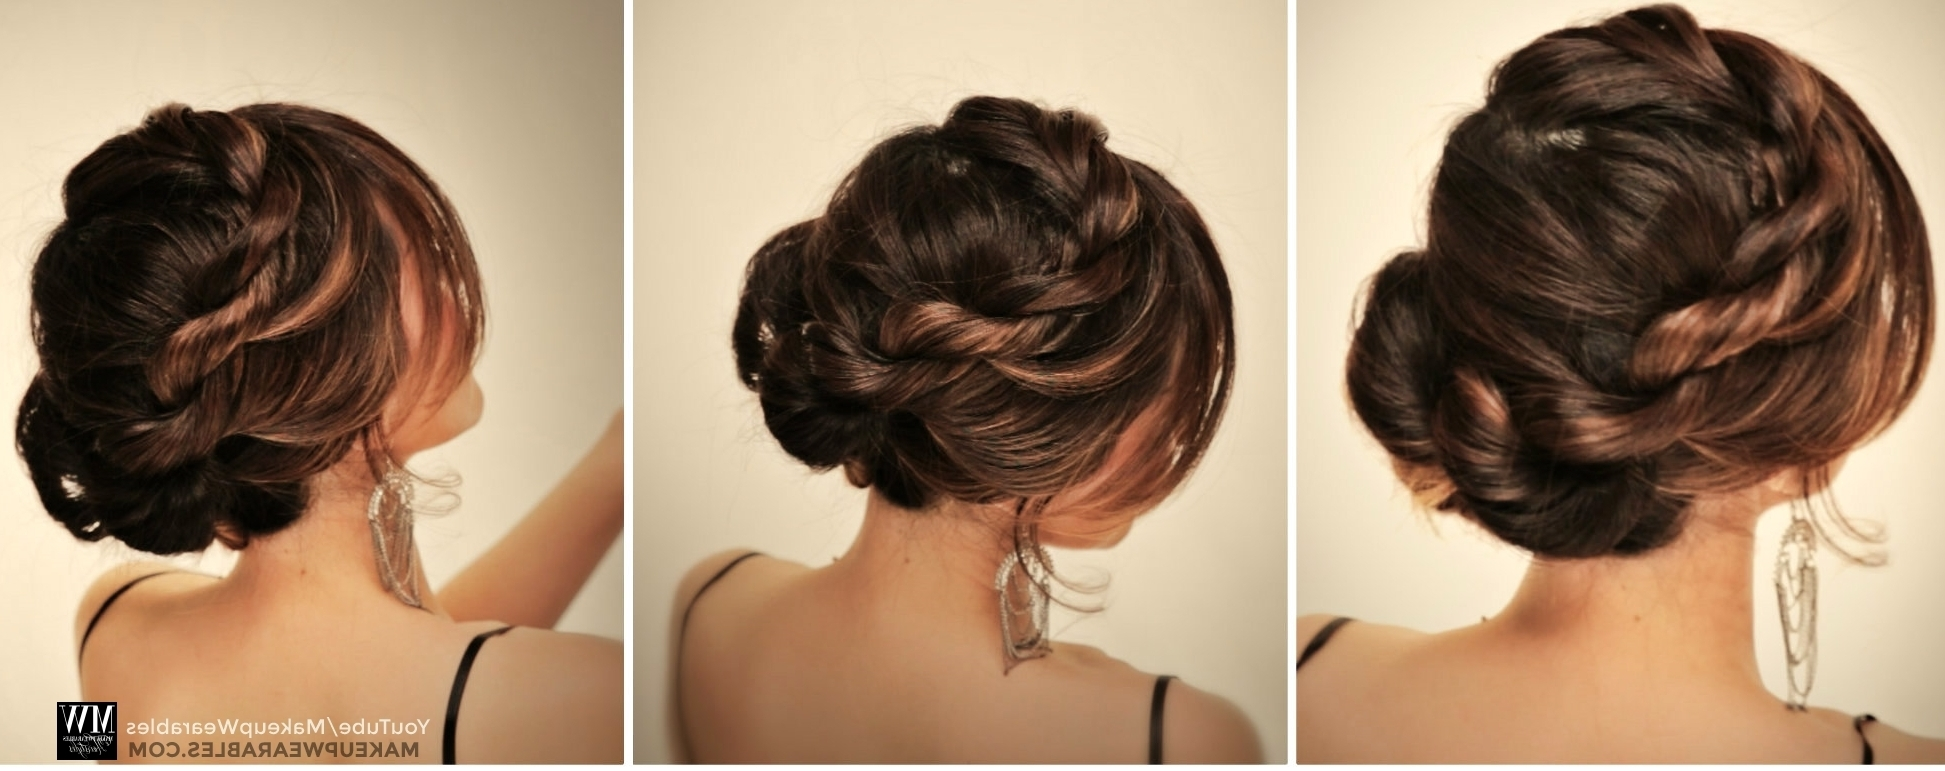 How To: 5 Amazingly Cute + Easy Hairstyles With A Simple Twist Inside Simple Hair Updo Hairstyles (View 13 of 15)